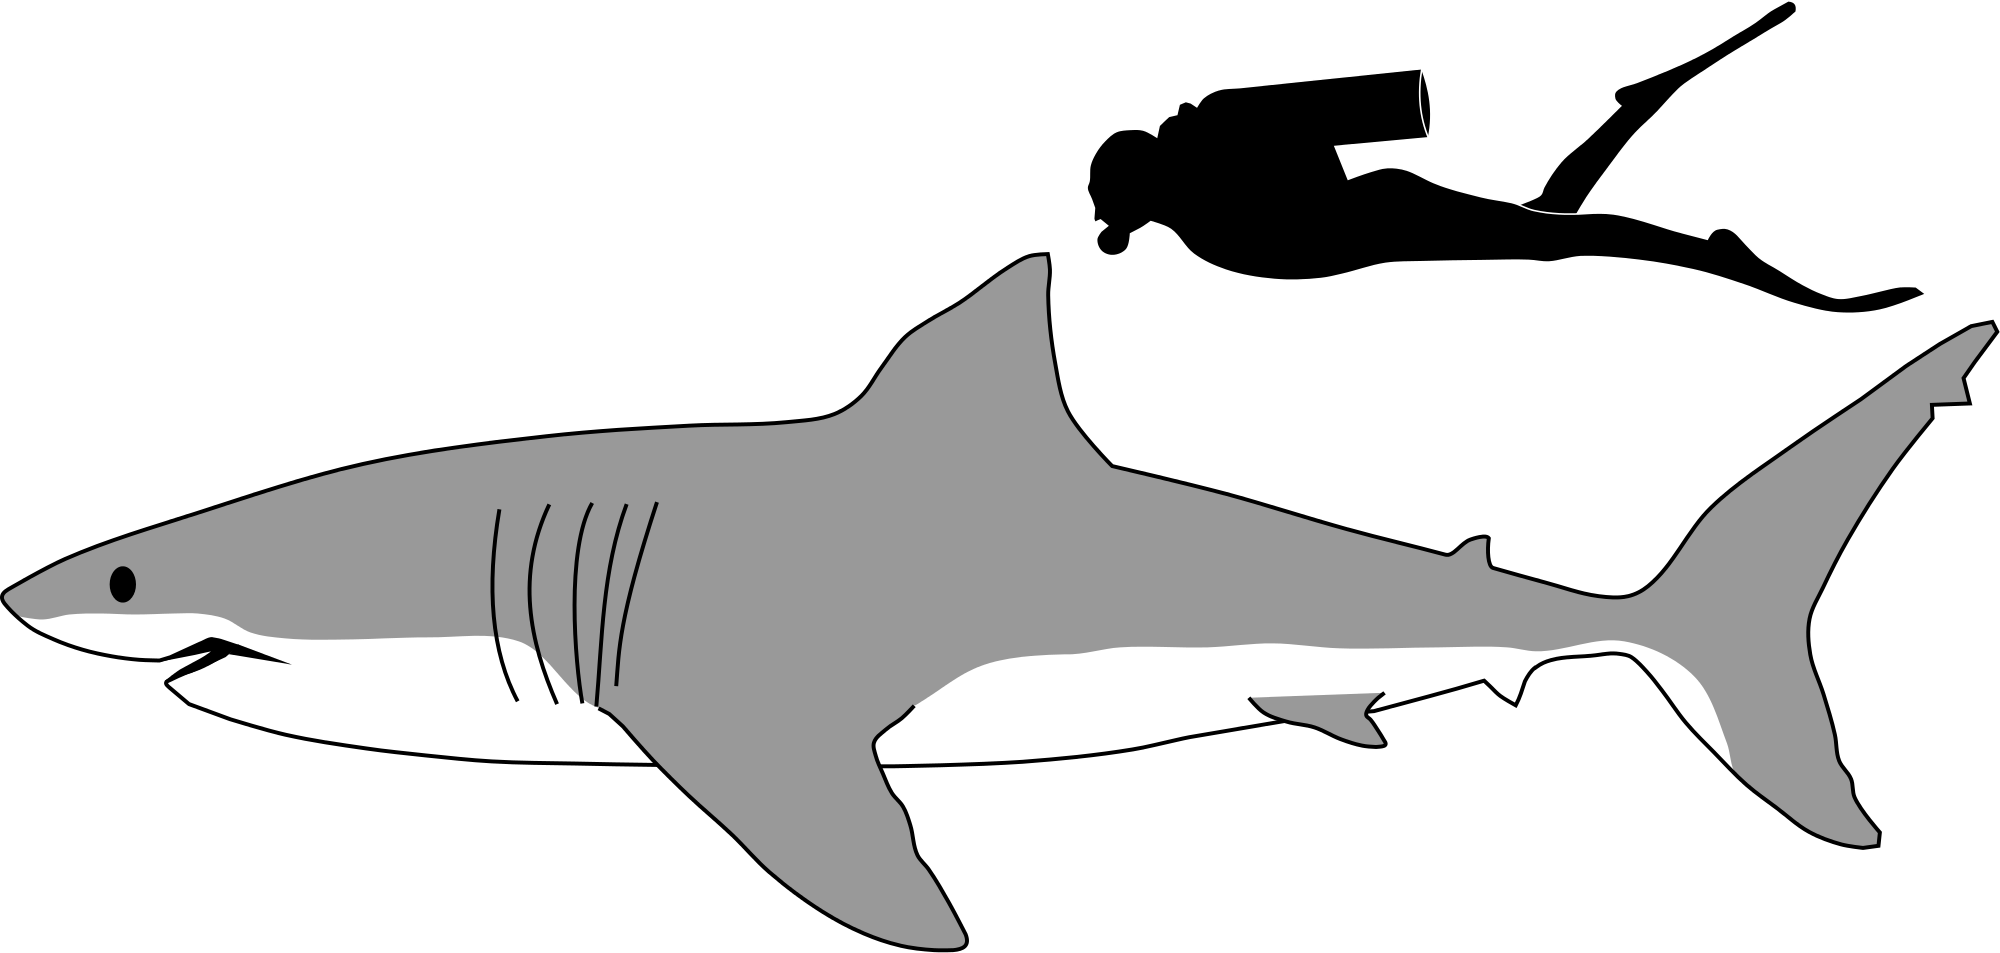 Shark black and white great white shark wikipedia